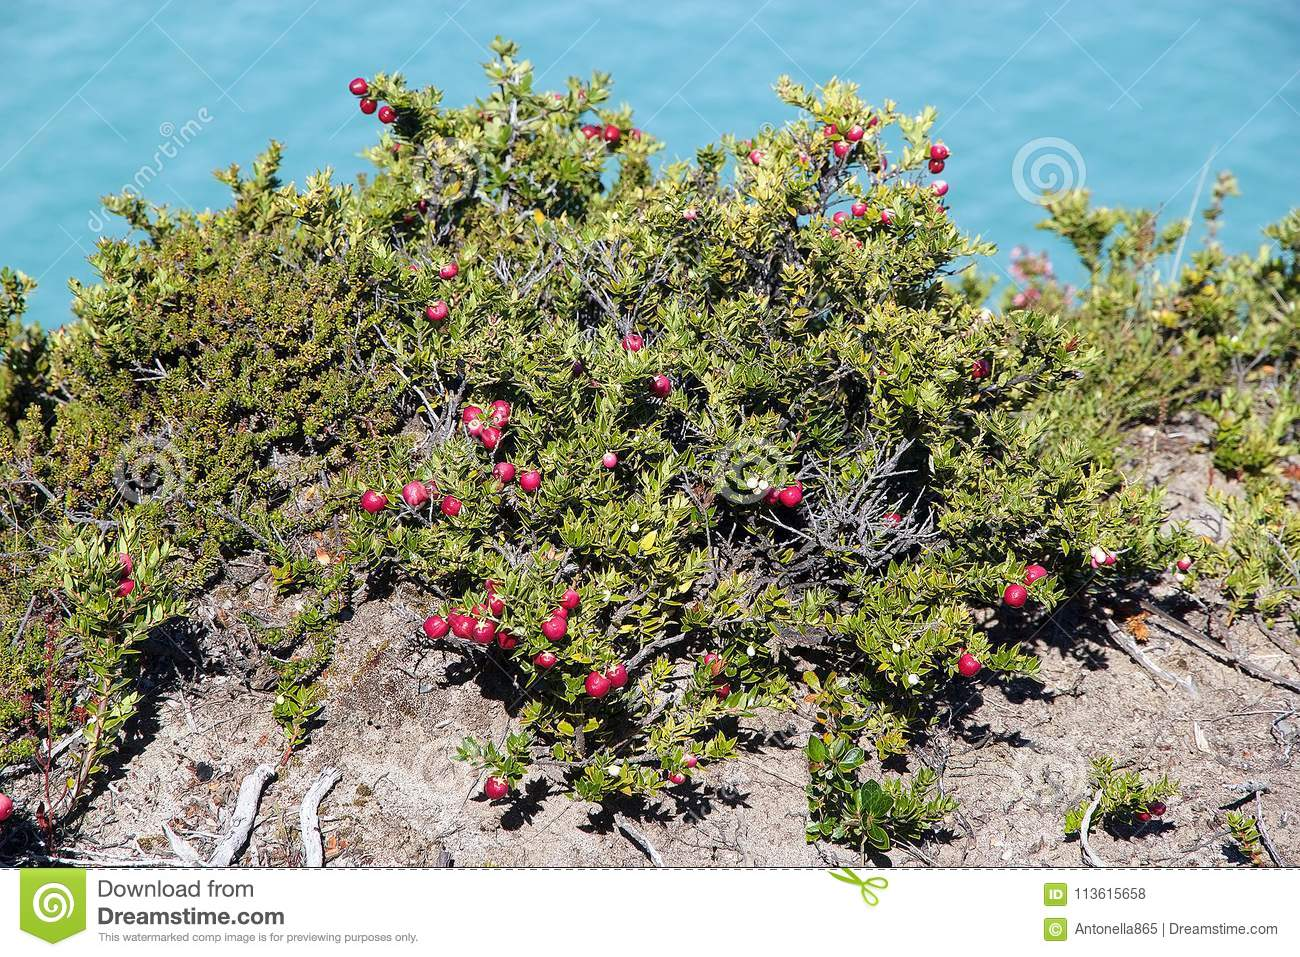 Pernettya.134 Pernettya Photos Free Royalty Free Stock Photos From Dreamstime